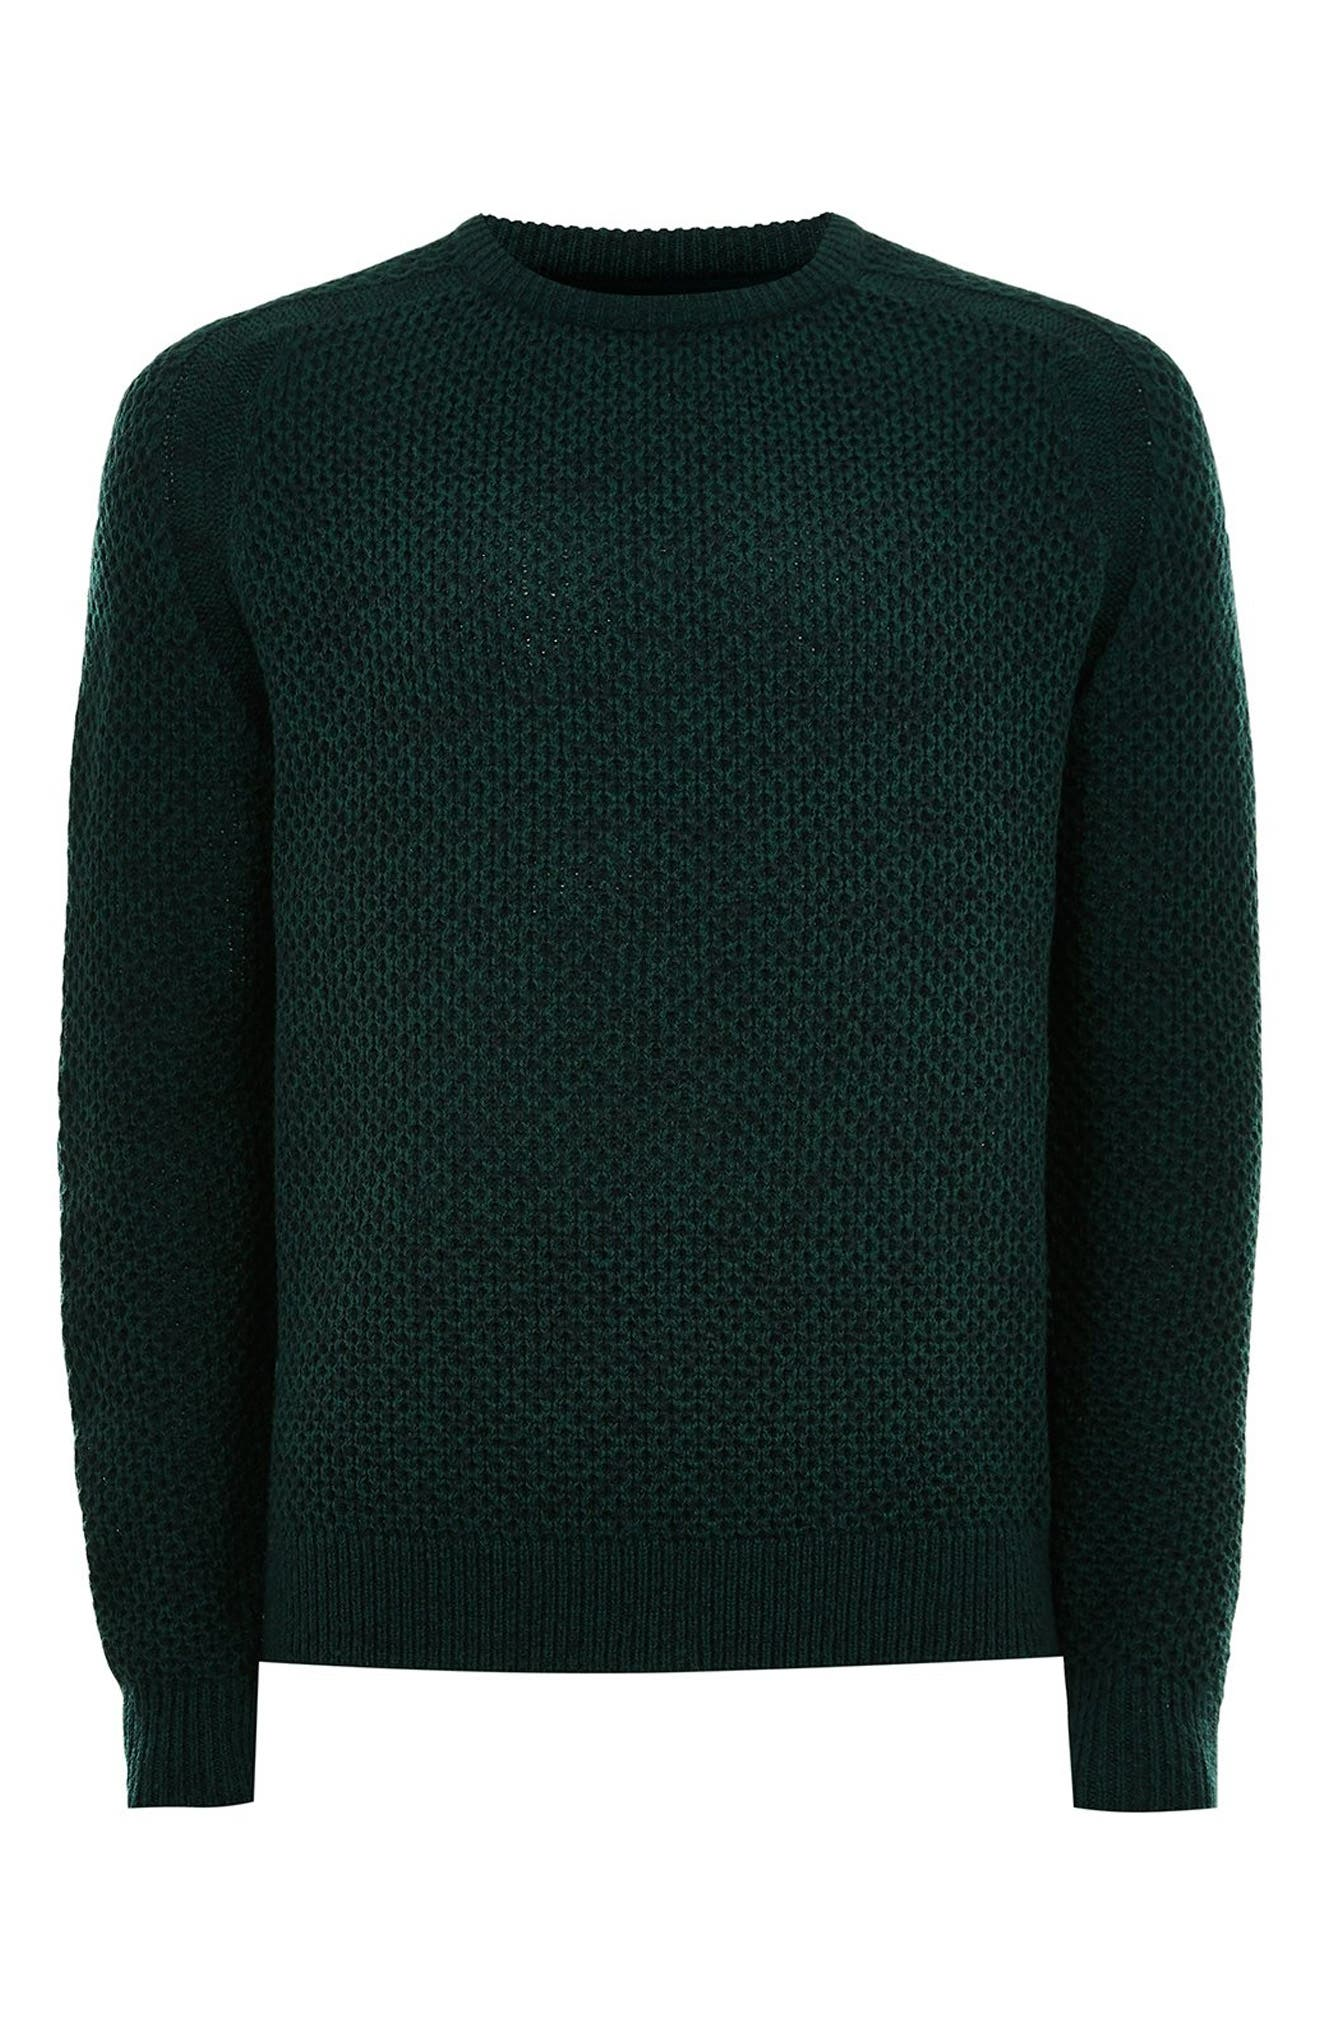 Honeycomb Classic Fit Crewneck Sweater,                             Alternate thumbnail 3, color,                             GREEN MULTI